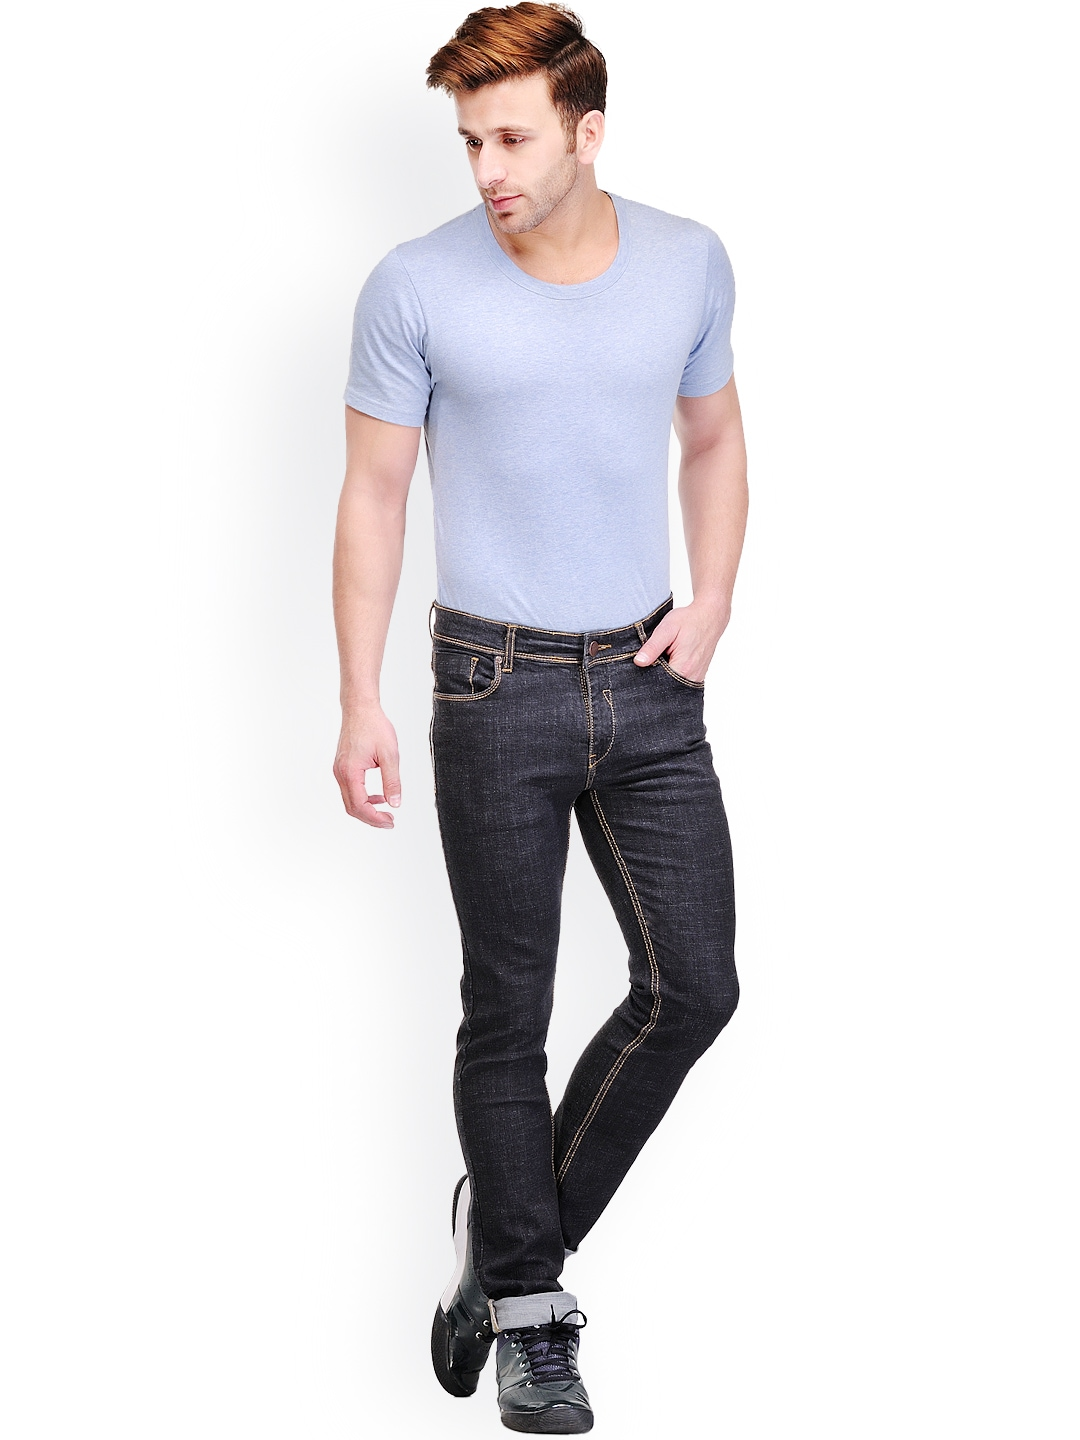 Jeans Wear For Men - Xtellar Jeans